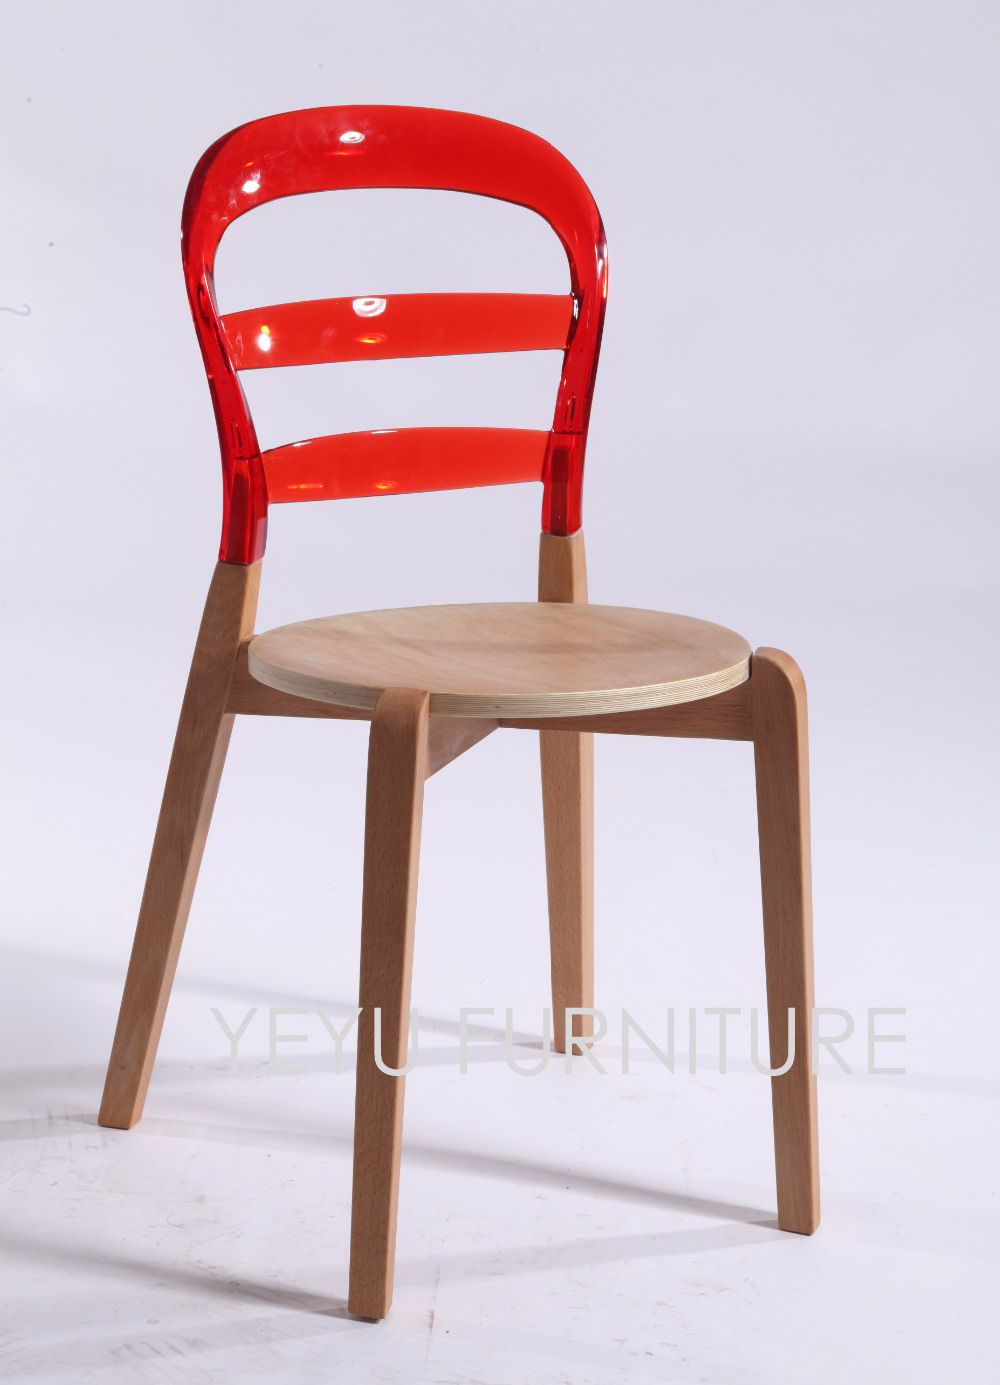 Modern wood chair with arms - Modern Design Solid Wood And Transparent Plastic Wien Chair Wooden Dining Side Chair Modern Furniture Caft Loft Nice Chairs